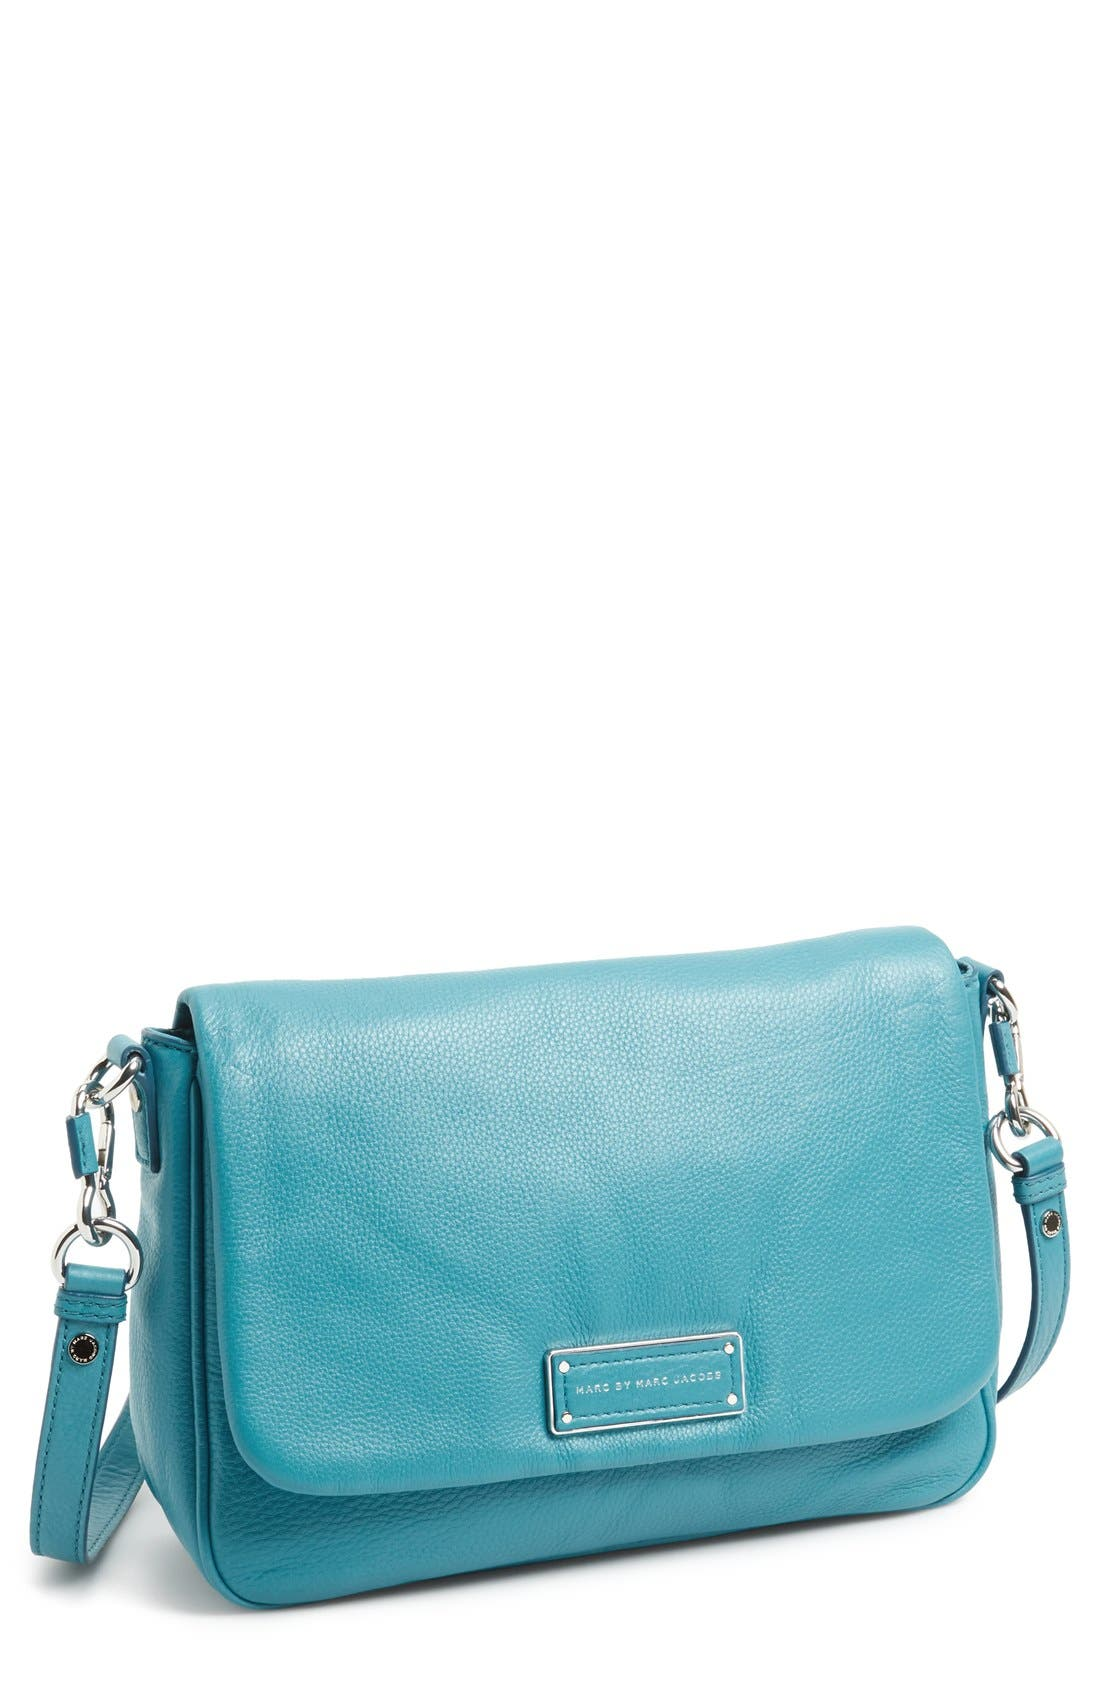 Main Image - MARC BY MARC JACOBS 'Too Hot to Handle - Lea' Crossbody Bag